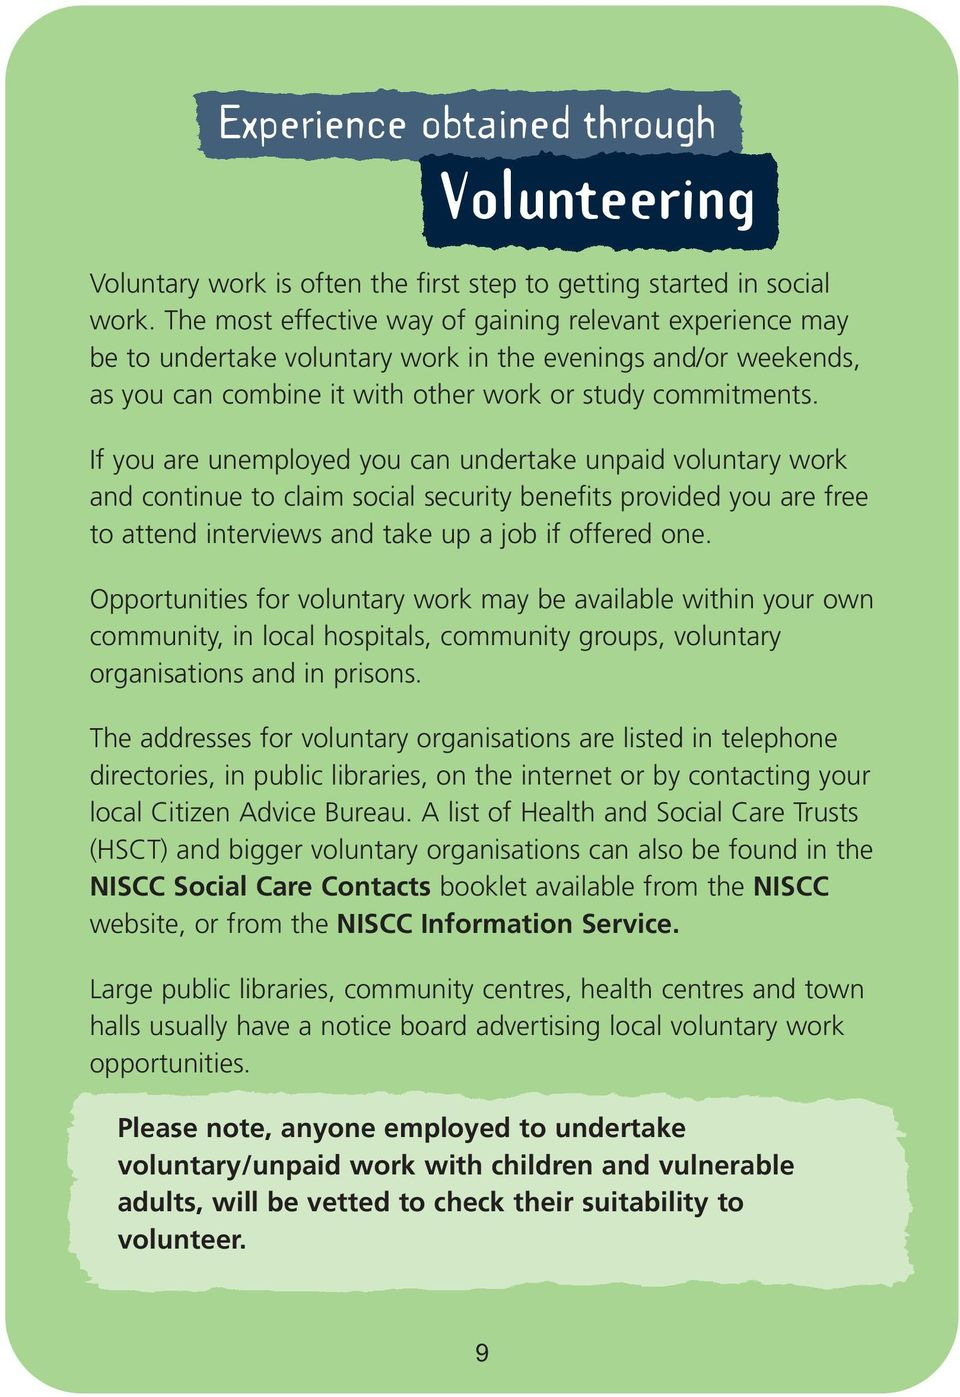 If you are unemployed you can undertake unpaid voluntary work and continue to claim social security benefits provided you are free to attend interviews and take up a job if offered one.